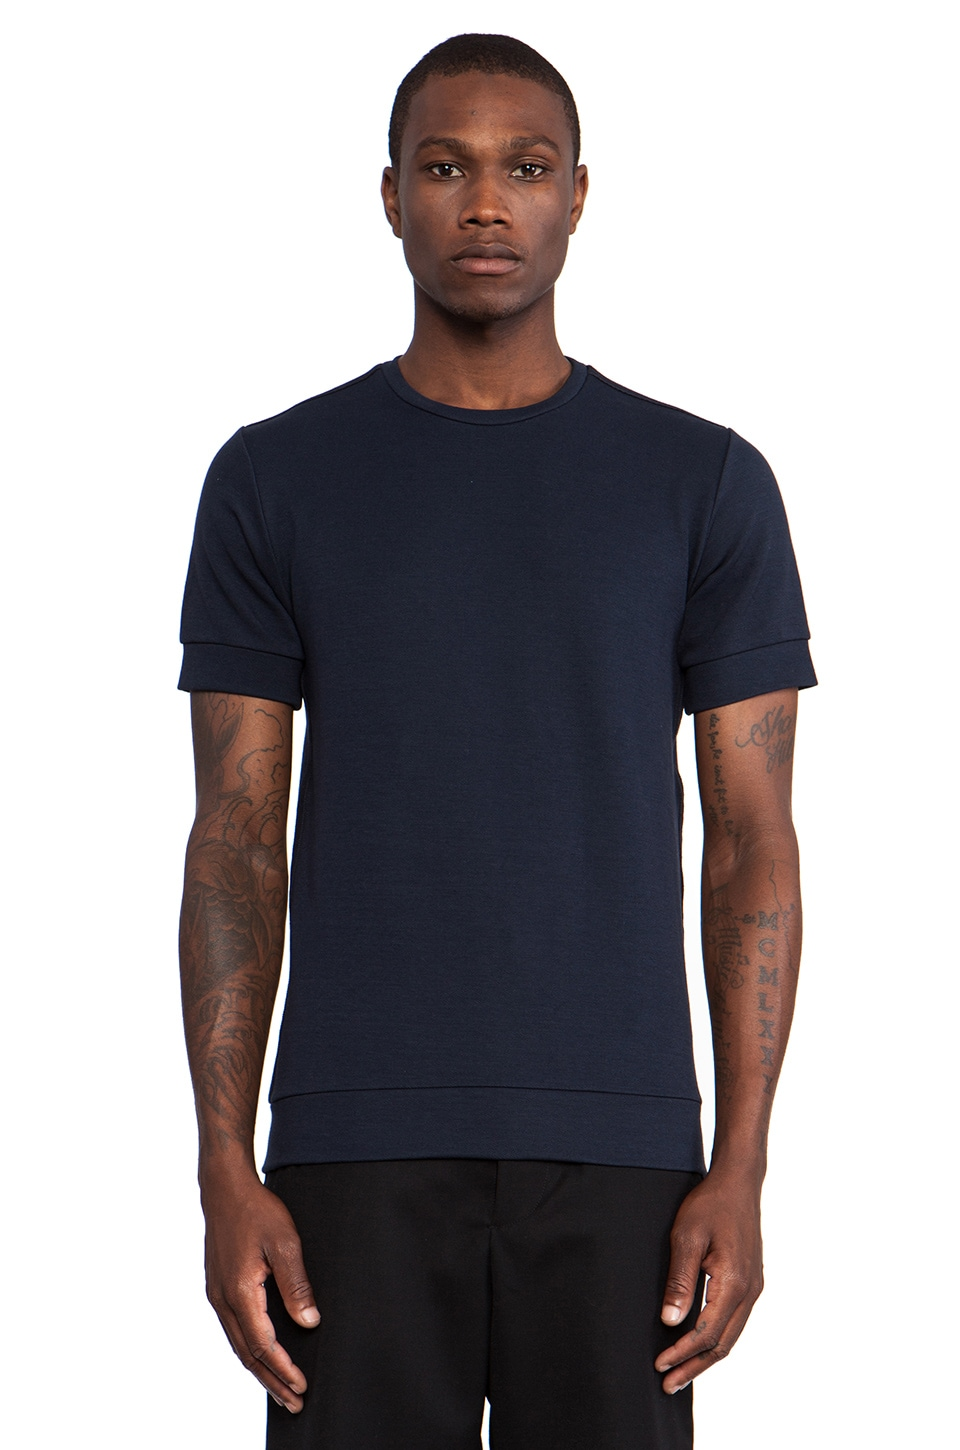 Public School Tee in Navy